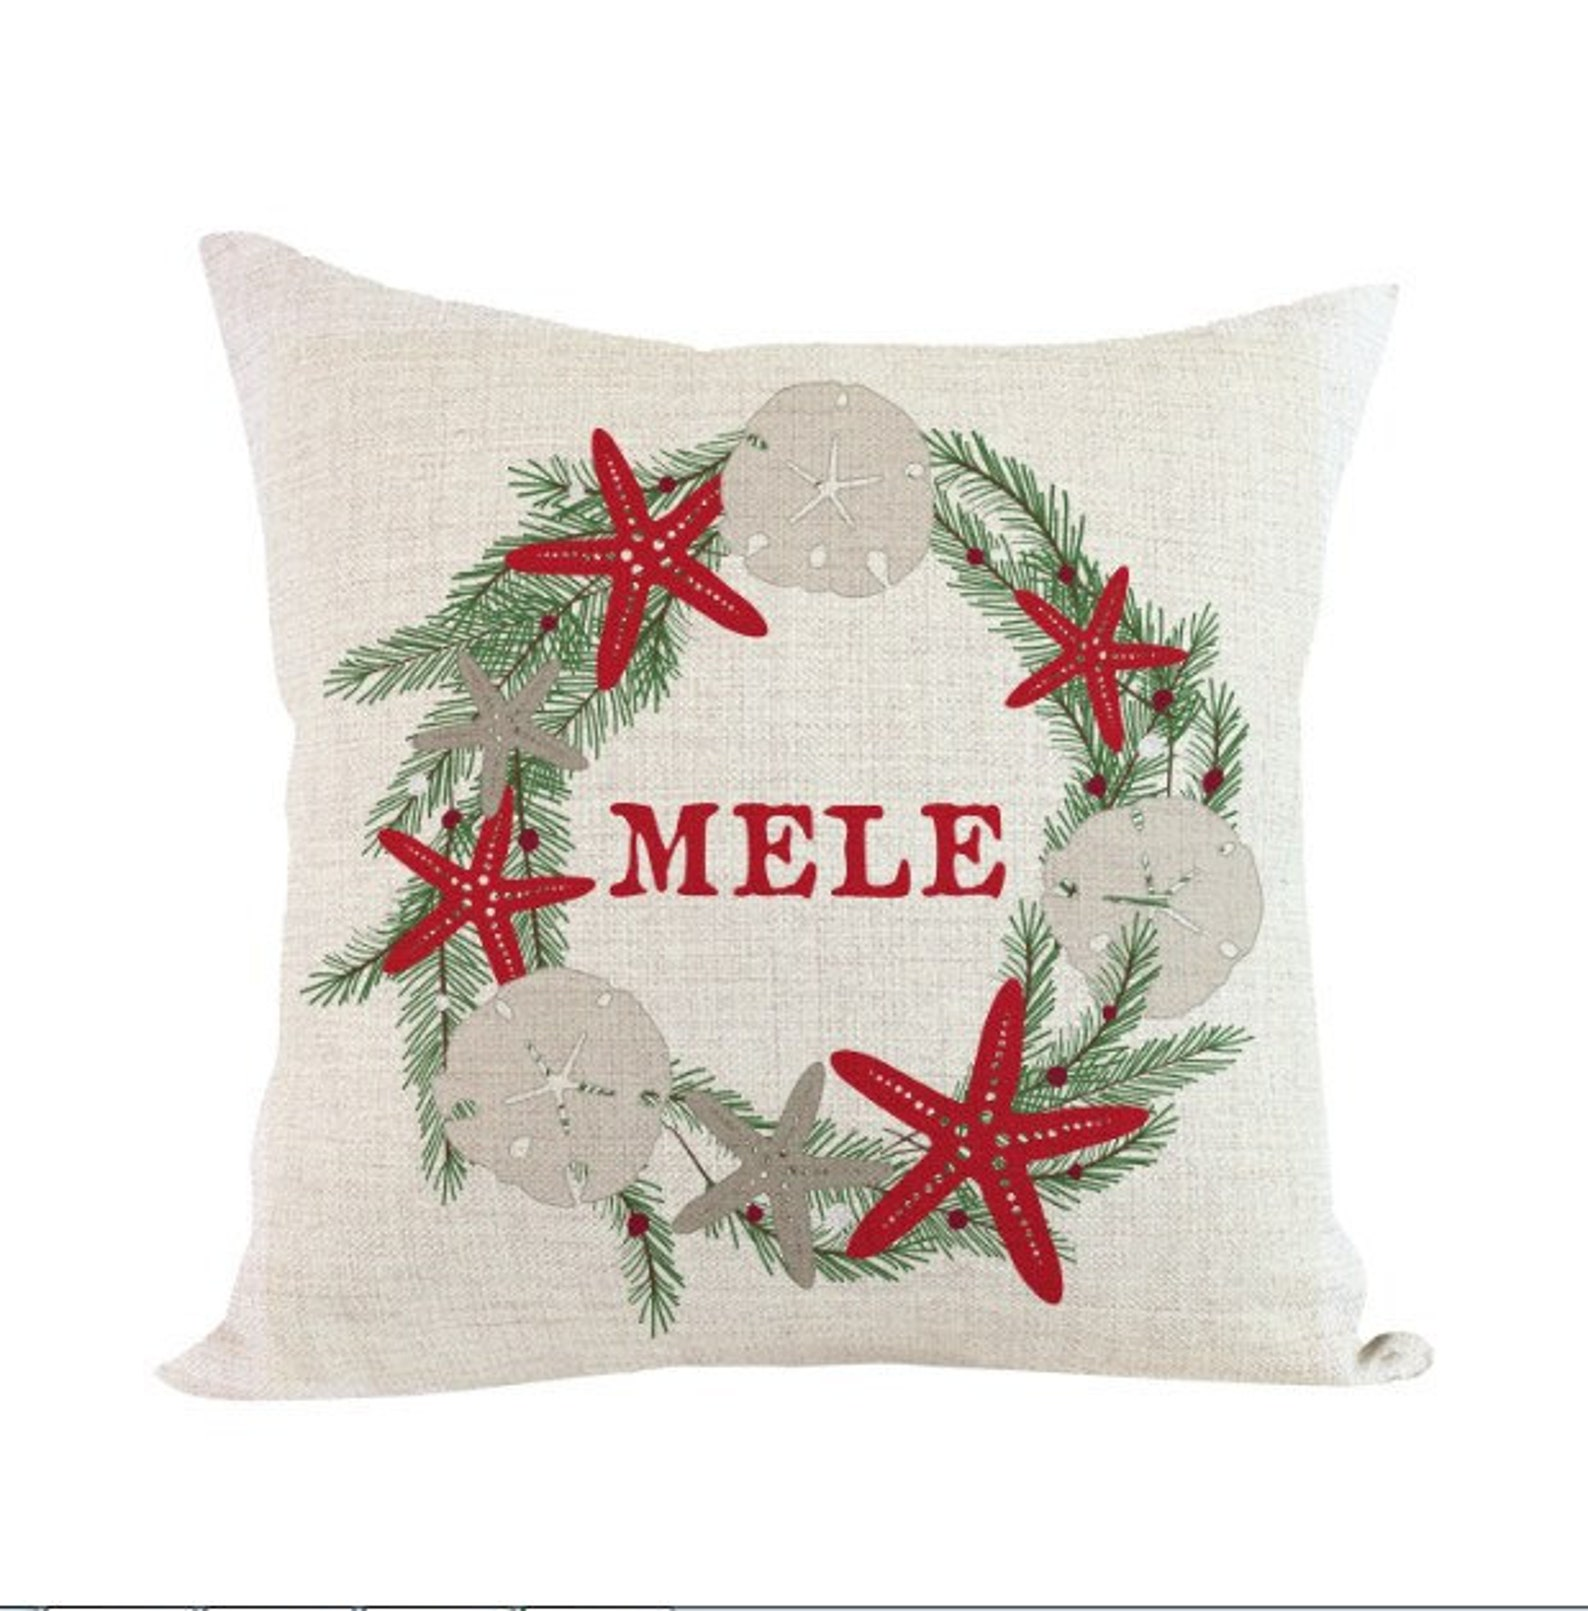 This Christmas pillow is one of the best Hawaii gifts